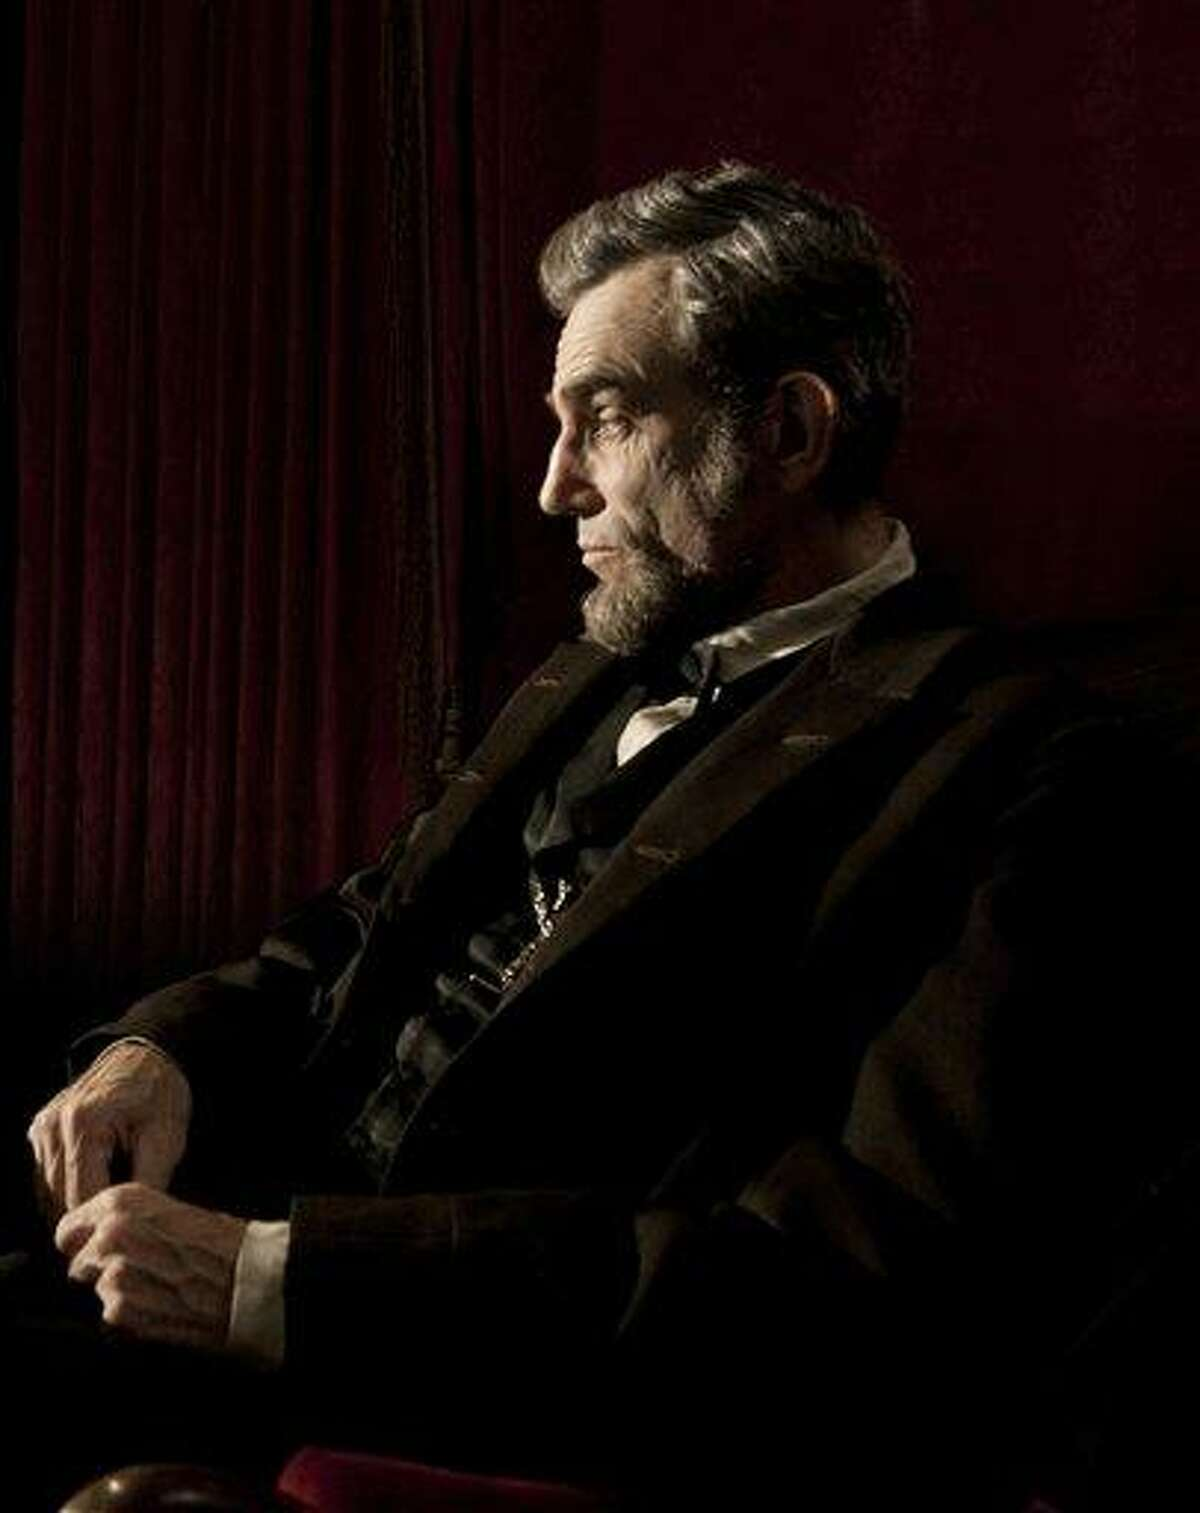 """This publicity film image released by DreamWorks and Twentieth Century Fox shows Daniel Day-Lewis portraying Abraham Lincoln in the film """"Lincoln."""" Best-picture prospects for Oscar Nominations on Thursday, Jan. 10, 2013, include, """"Lincoln,"""" directed by Steven Spielberg; """"Zero Dark Thirty,"""" directed by Kathryn Bigelow; """"Les Miserables,"""" directed by Tom Hooper; """"Argo,"""" directed by Ben Affleck; """"Django Unchained,"""" directed by Quentin Tarantino; and """"Life of Pi,"""" directed by Ang Lee. (AP Photo/DreamWorks, Twentieth Century Fox, David James, file)"""